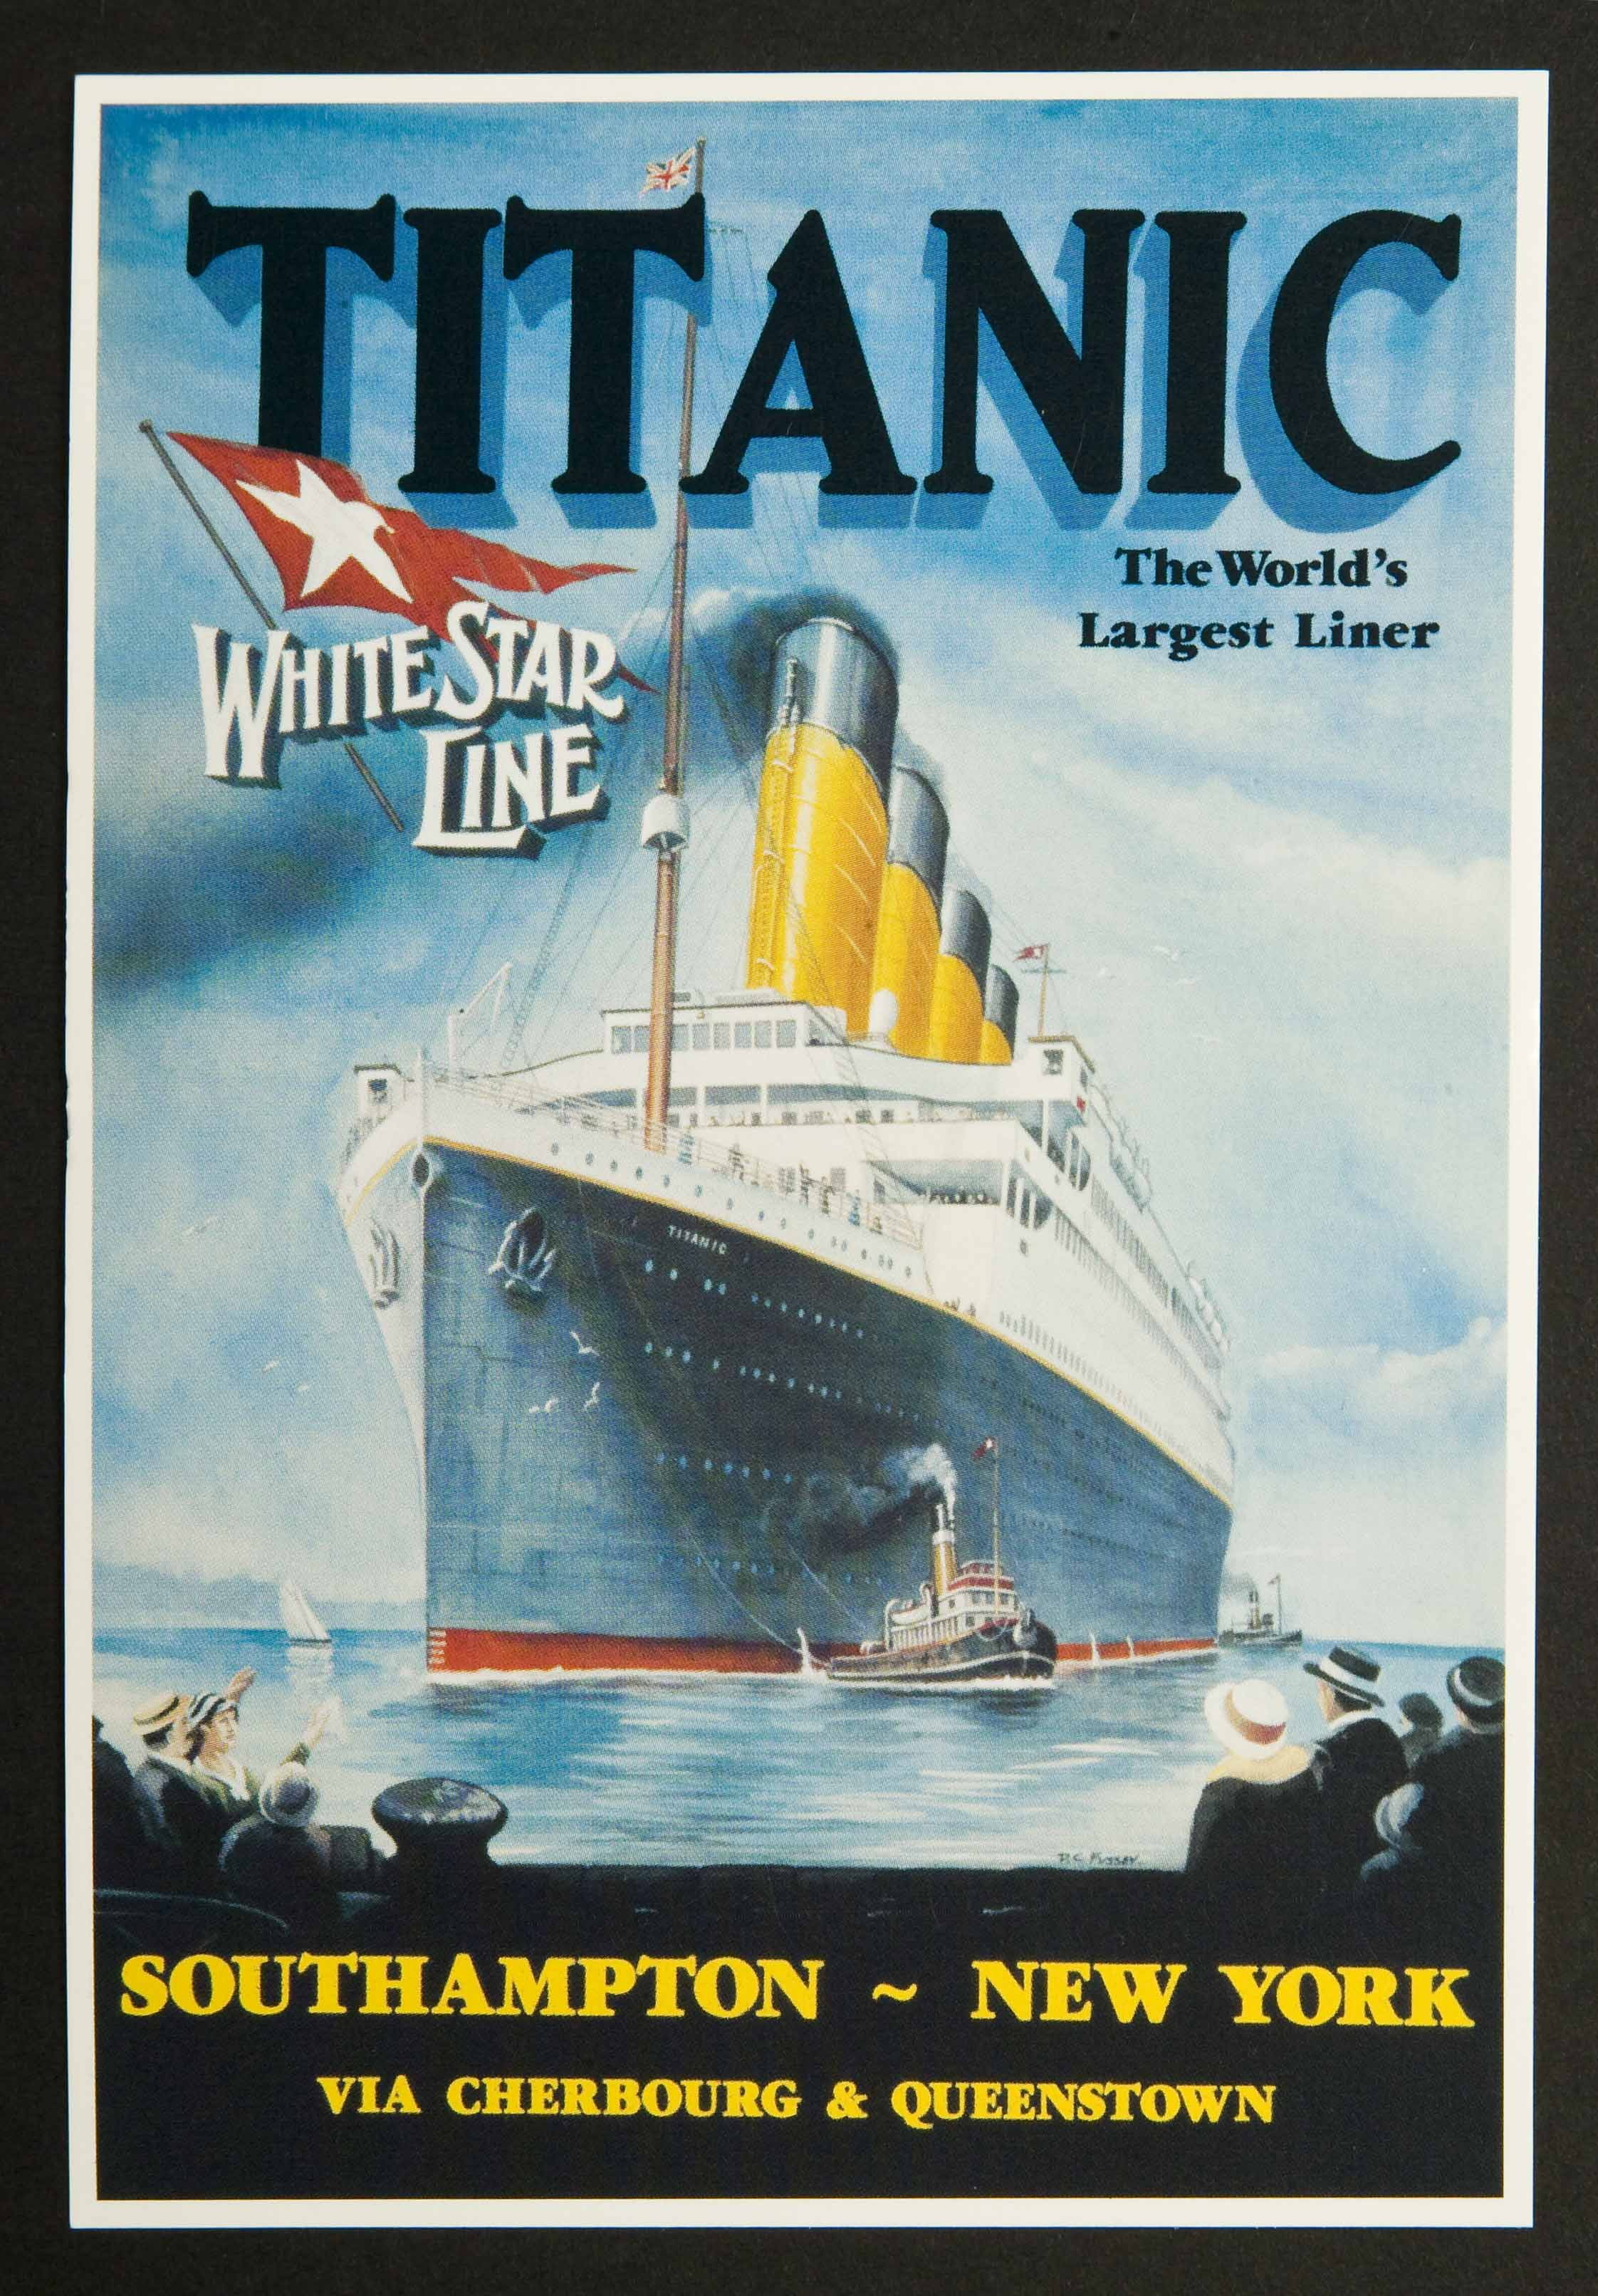 Titanic - The World's Largest Liner A3 Poster